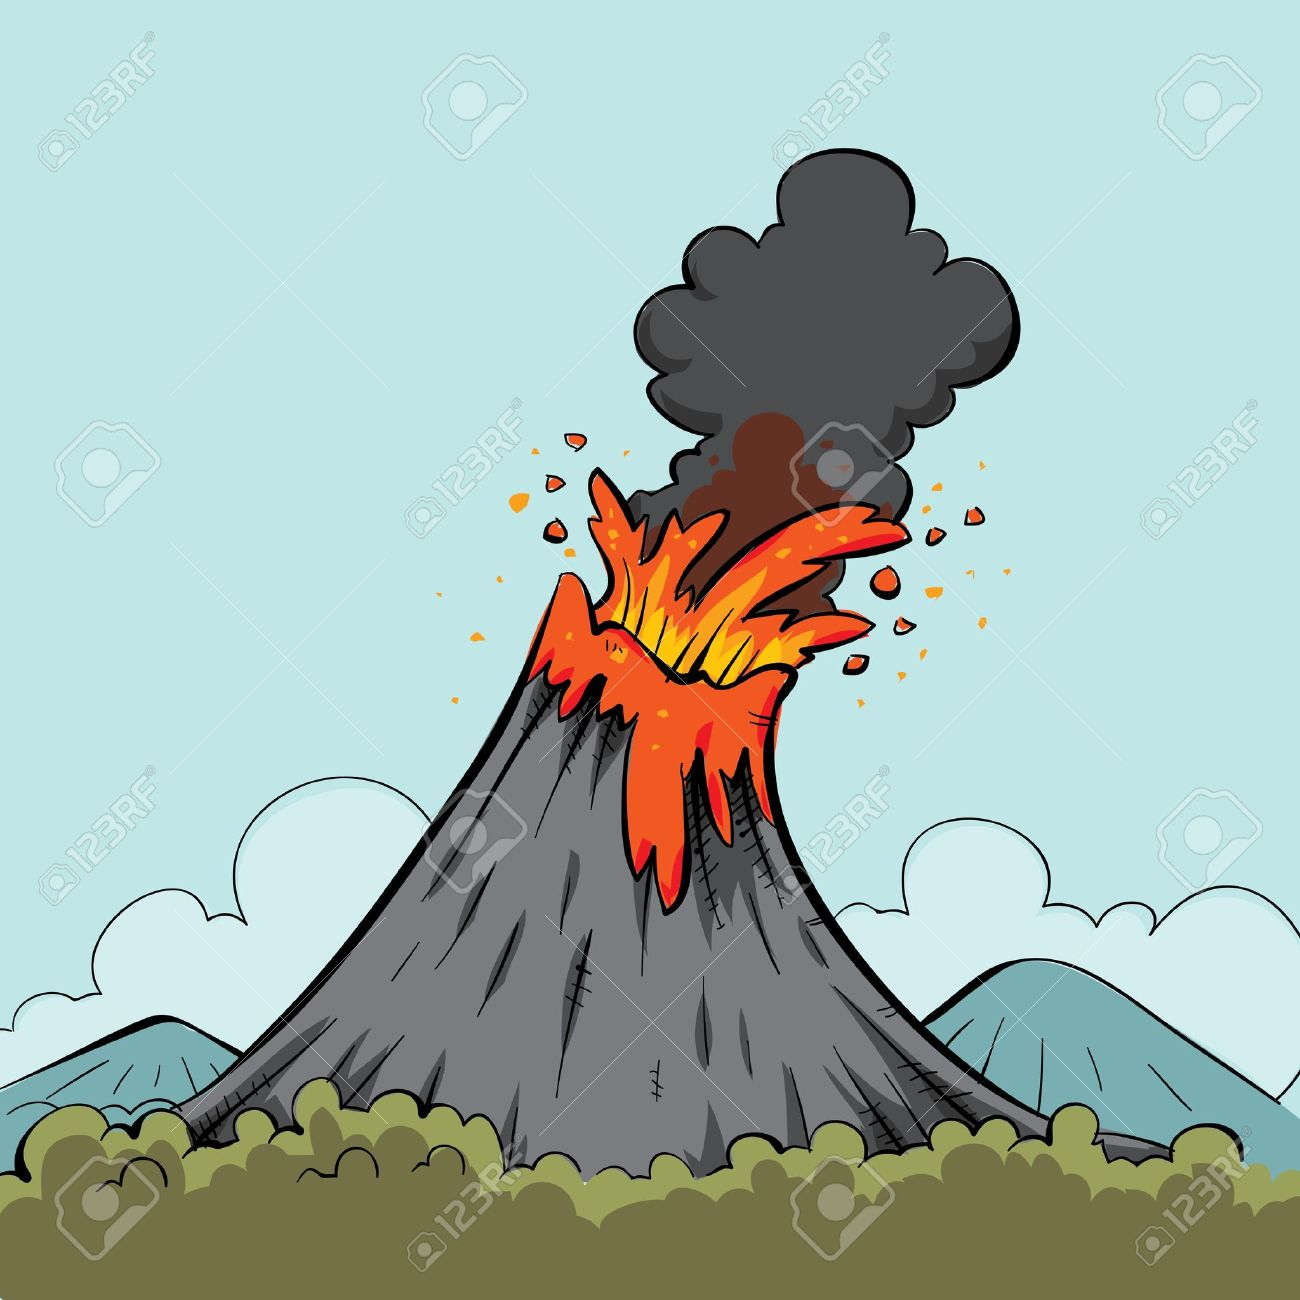 Lava spews from the mouth of a cartoon volcano. Stock Photo - 12050395